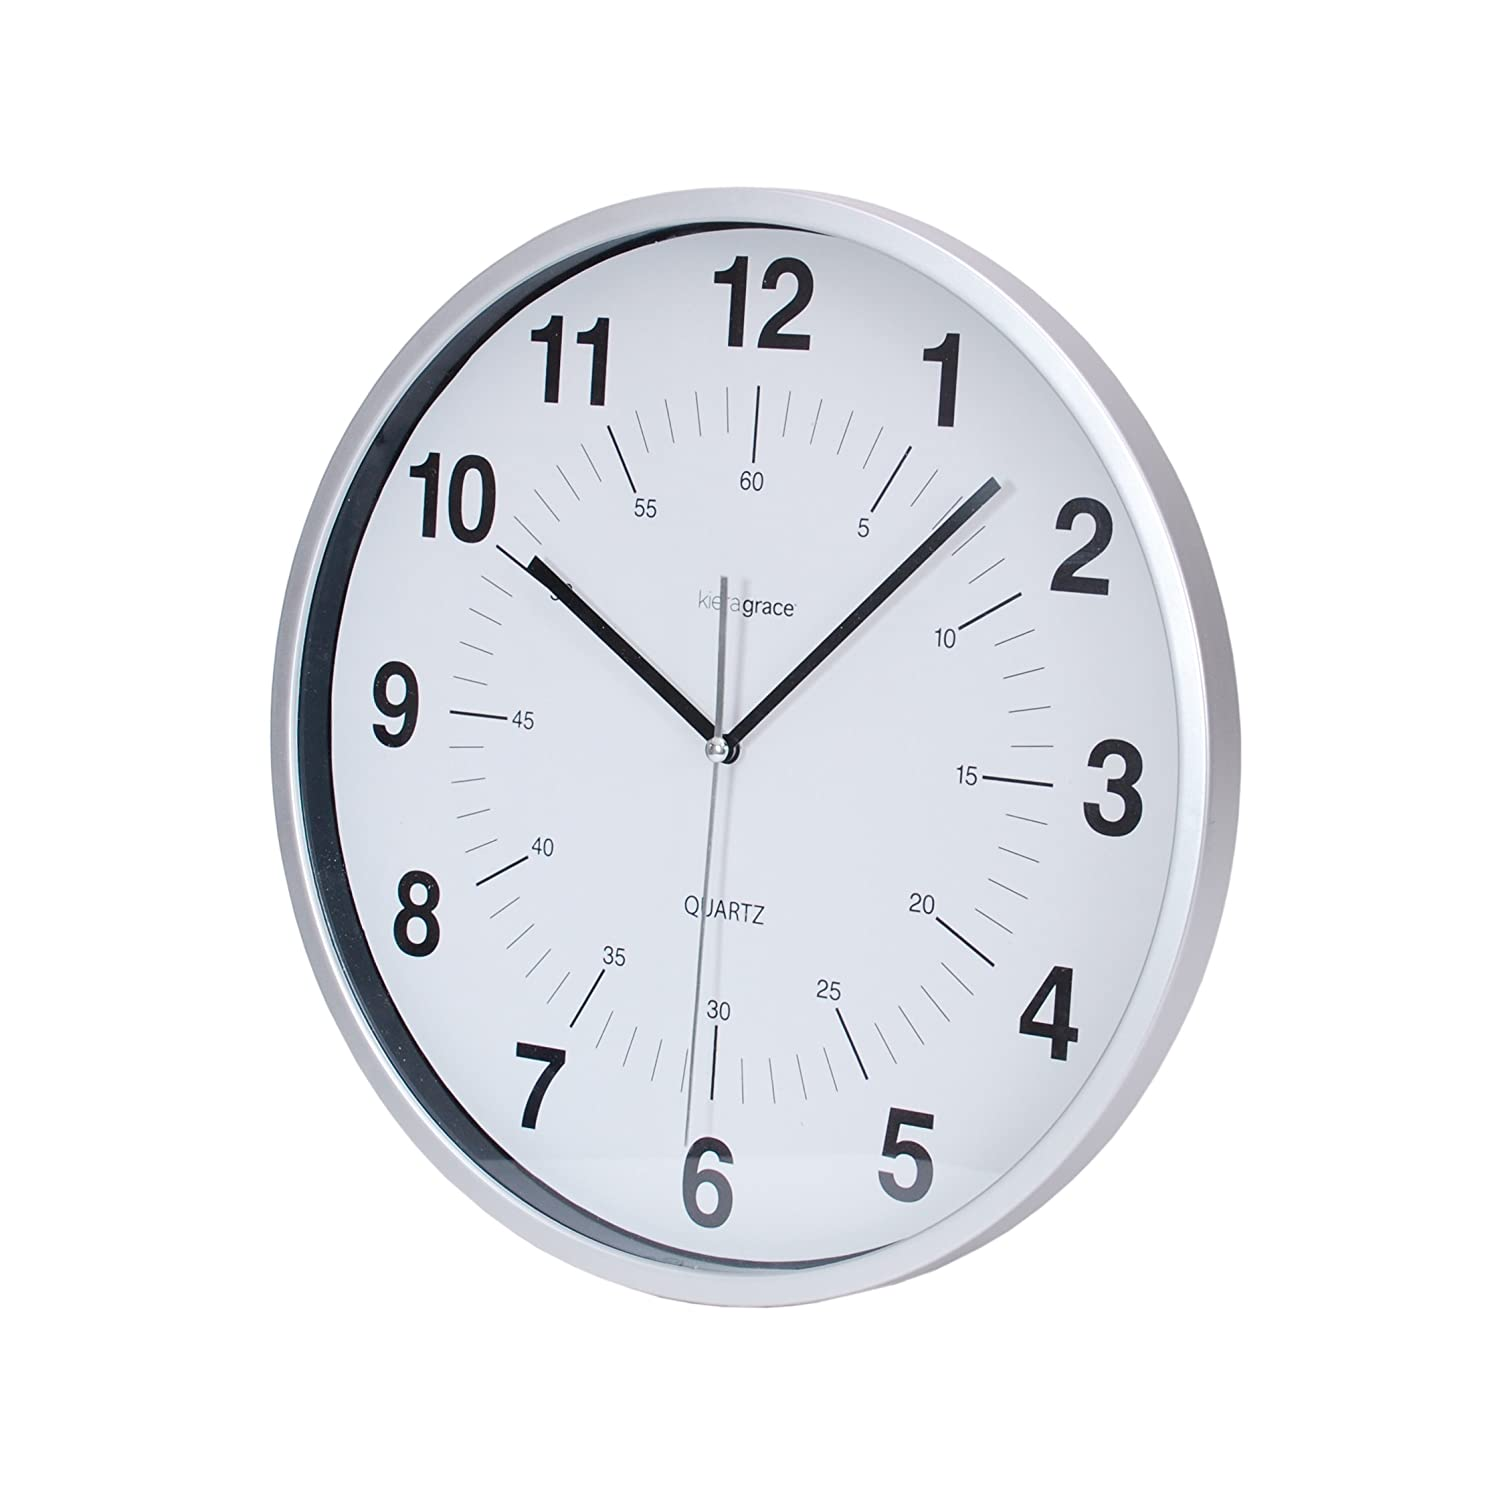 Amazon kiera grace synchro silent wall clock 12 inch 34 amazon kiera grace synchro silent wall clock 12 inch 34 inch deep silver home kitchen amipublicfo Images